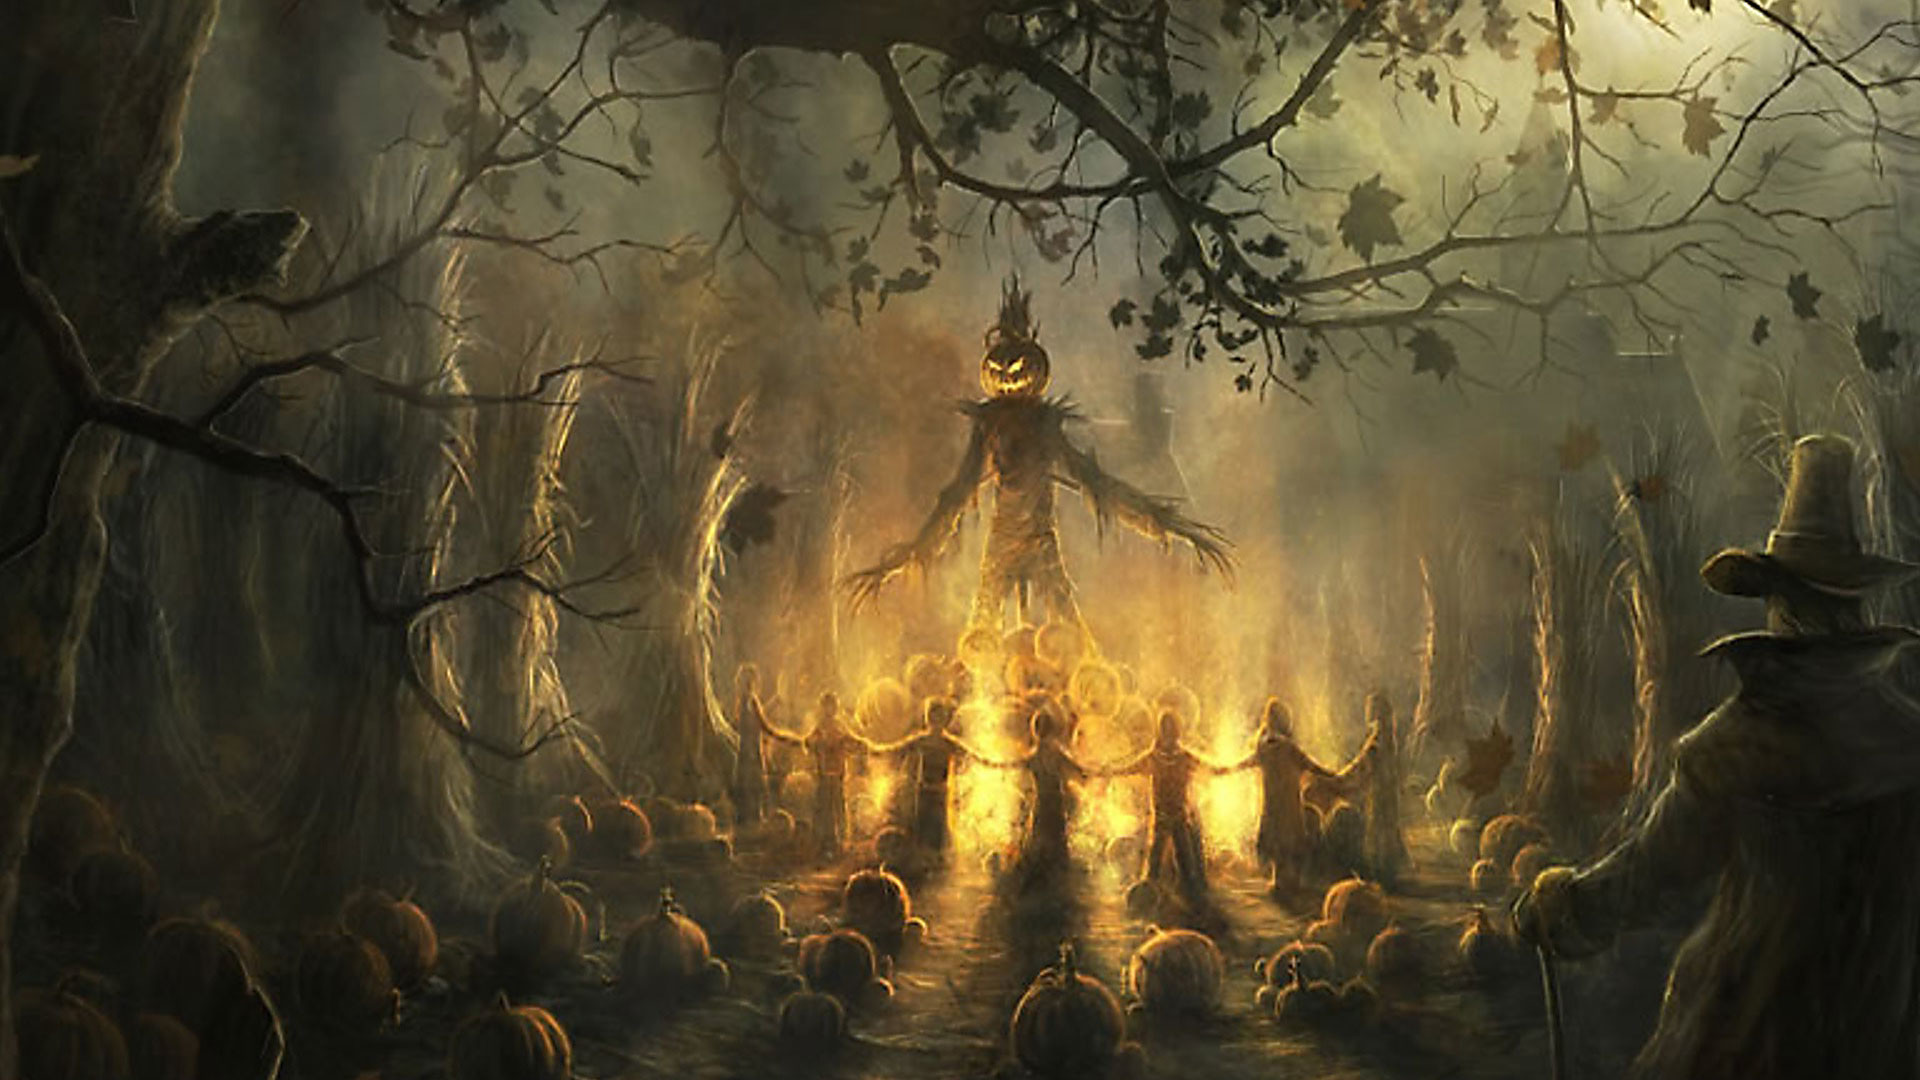 Haunted House 3d Live Wallpaper Download Scary Halloween Background Images 62 Images